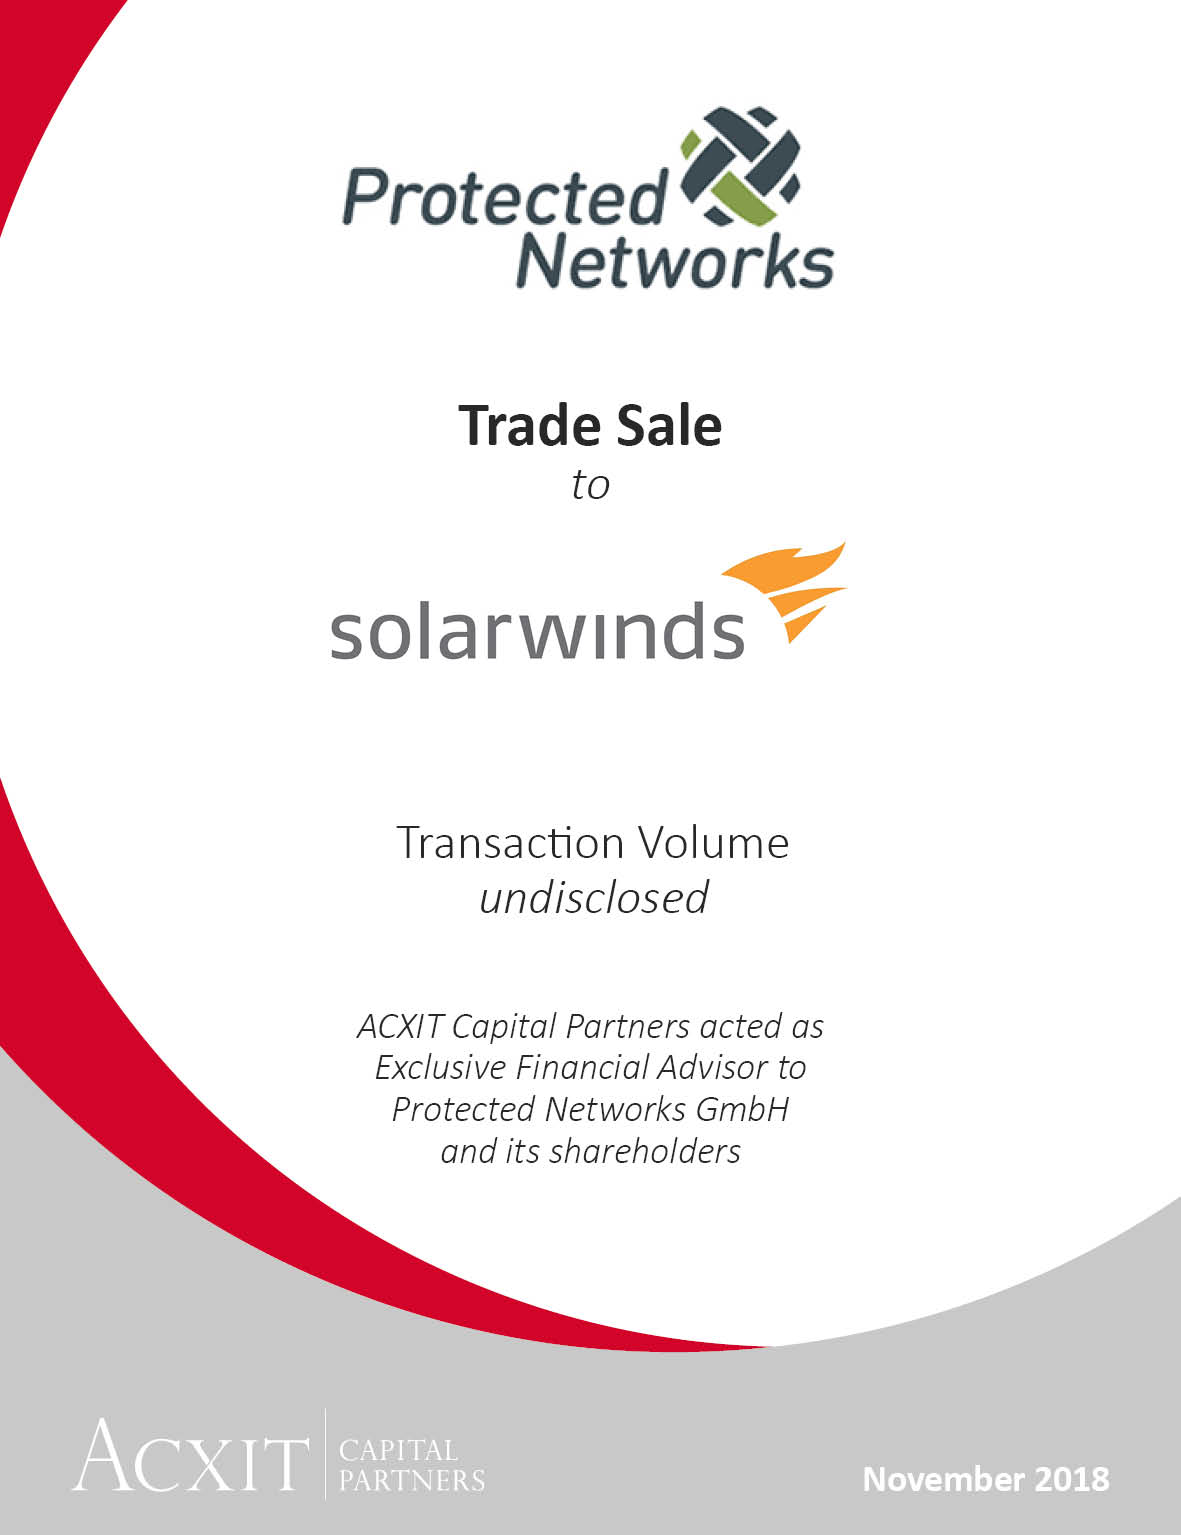 Trade Sale of Protected Networks to Solarwinds